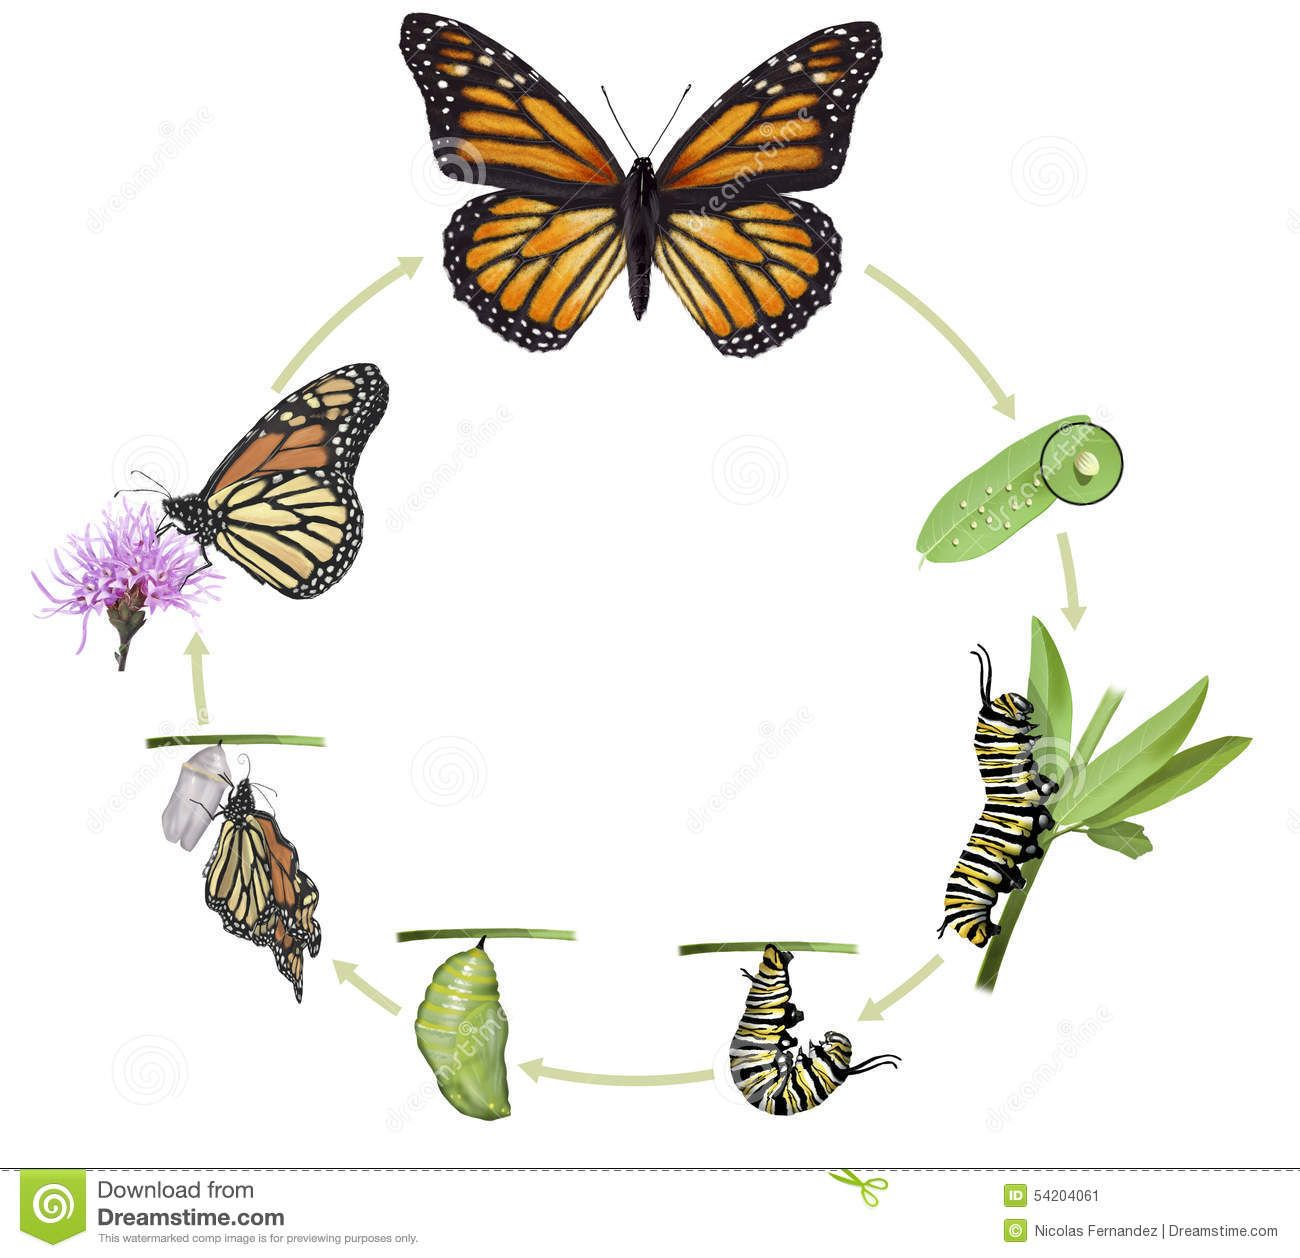 Download 4 182 Monarch Butterfly Stock Illustrations